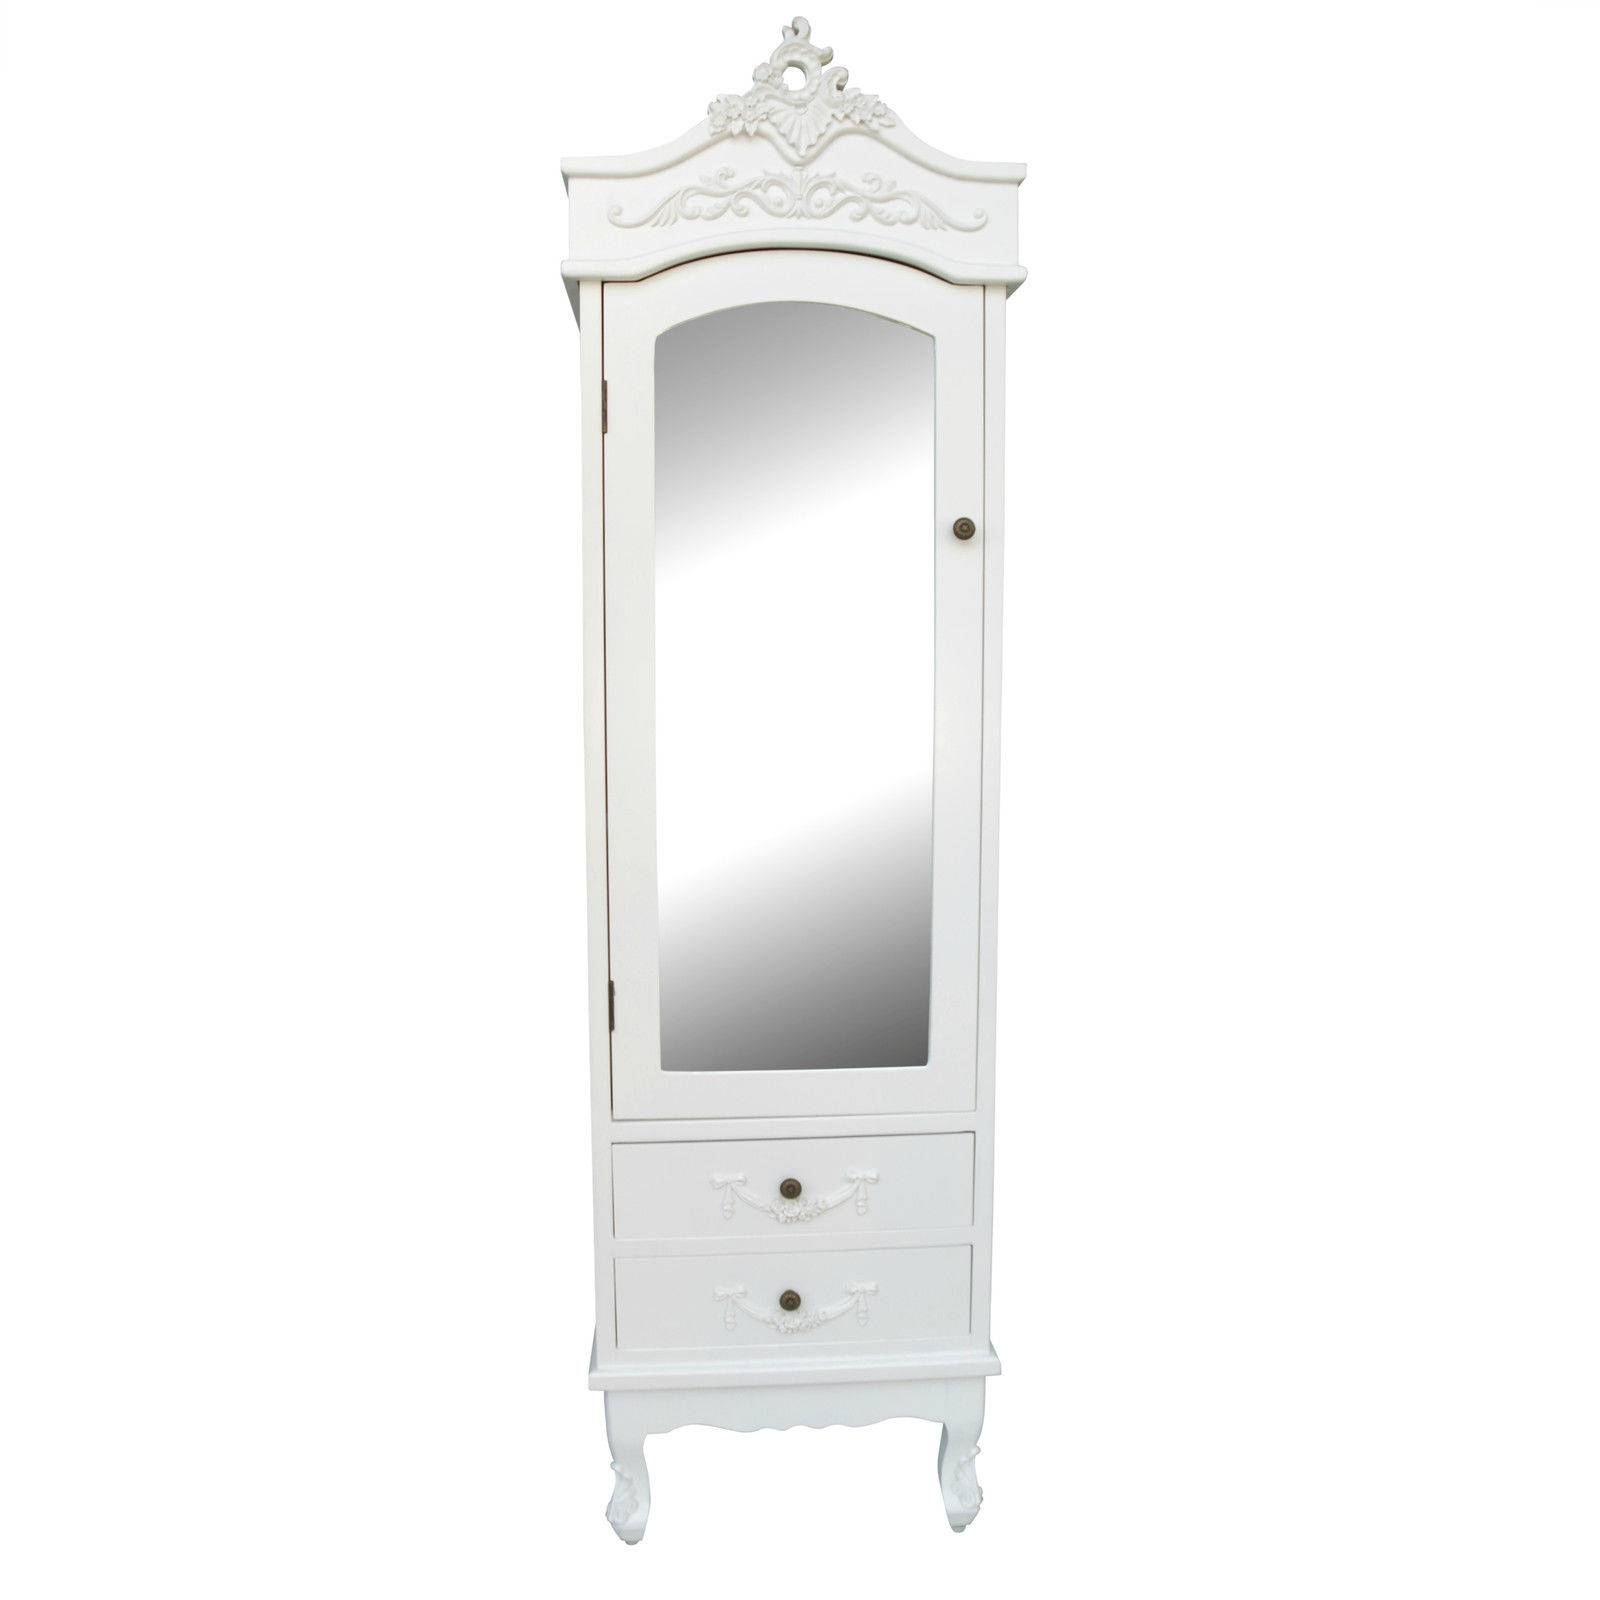 French White Single Door White Armoire Furniture – La Maison Chic In Single French Wardrobes (View 4 of 15)